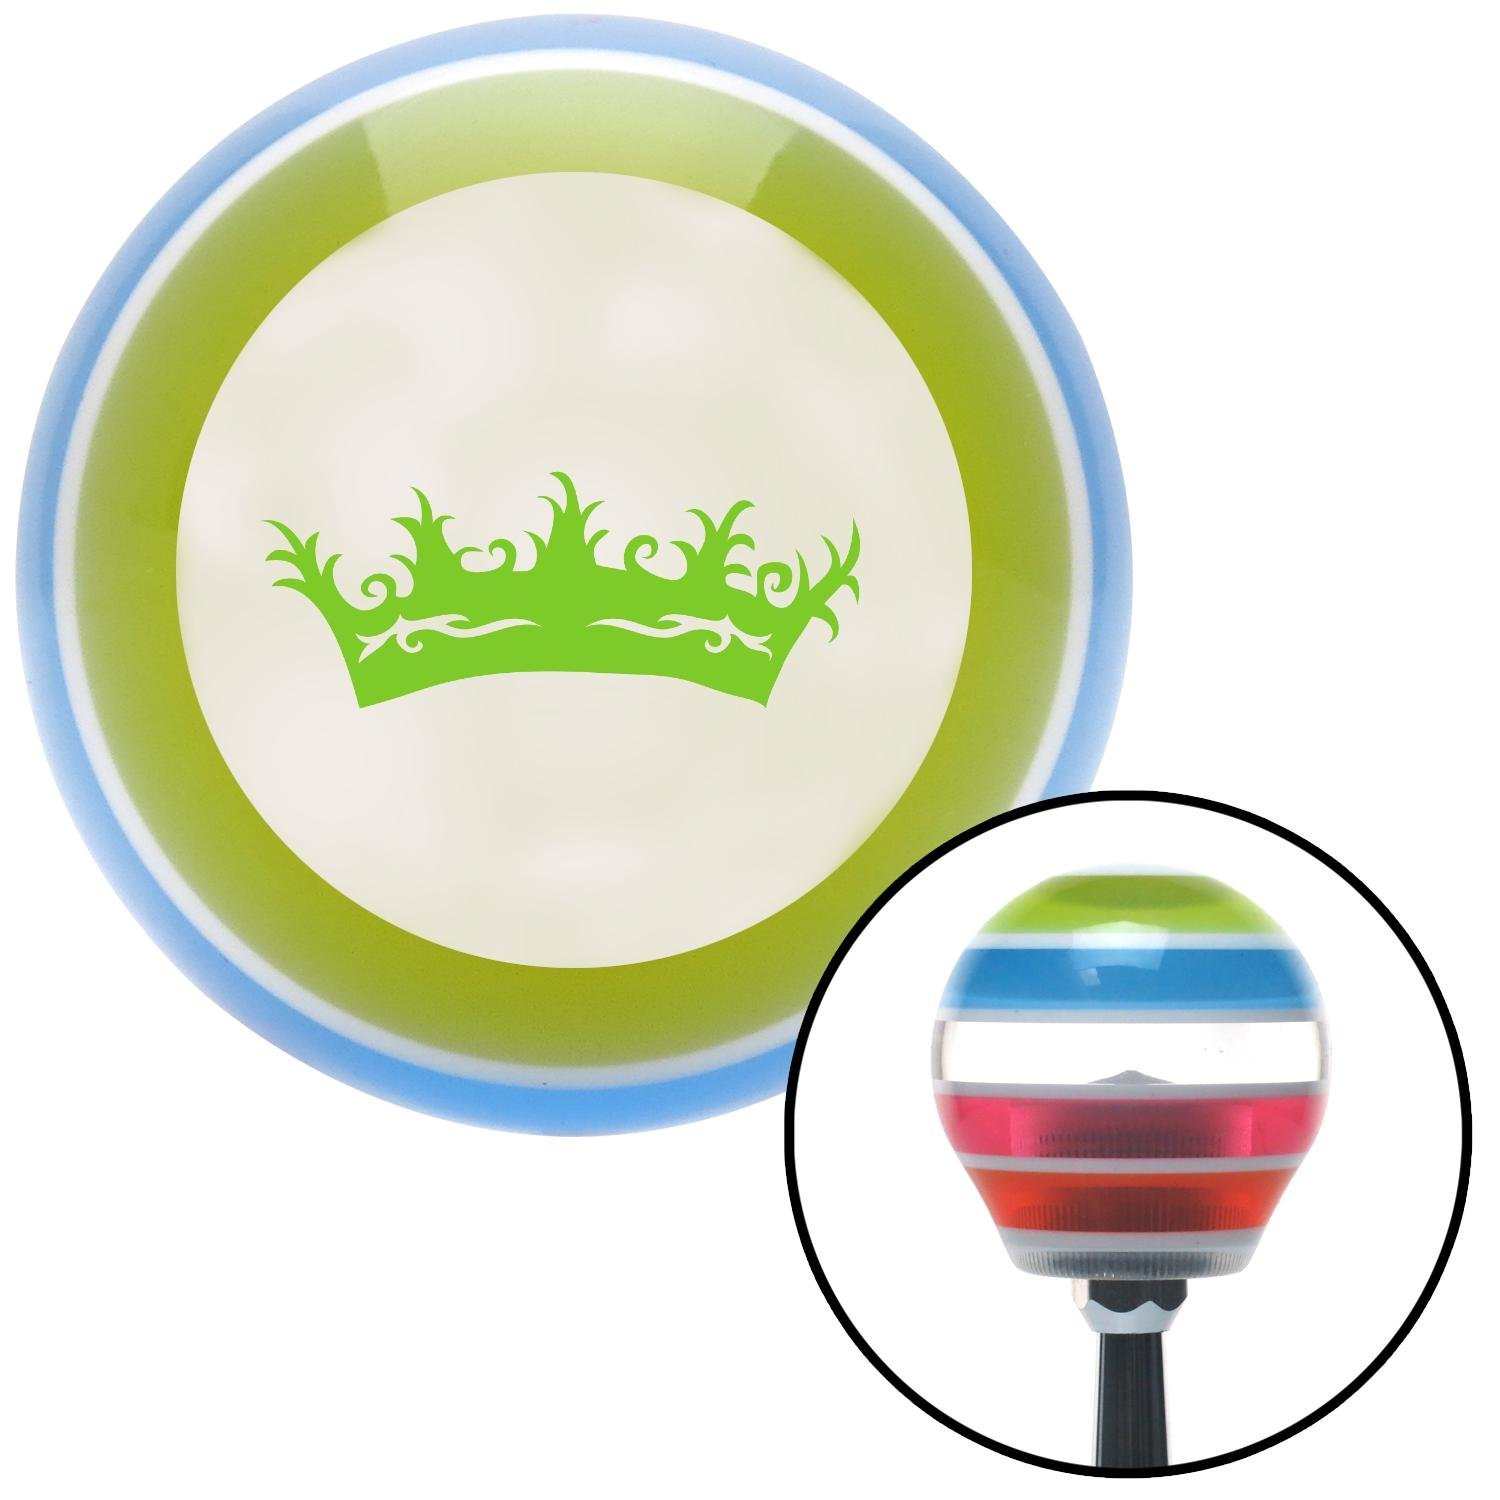 Green Prince Crown American Shifter 132157 Stripe Shift Knob with M16 x 1.5 Insert